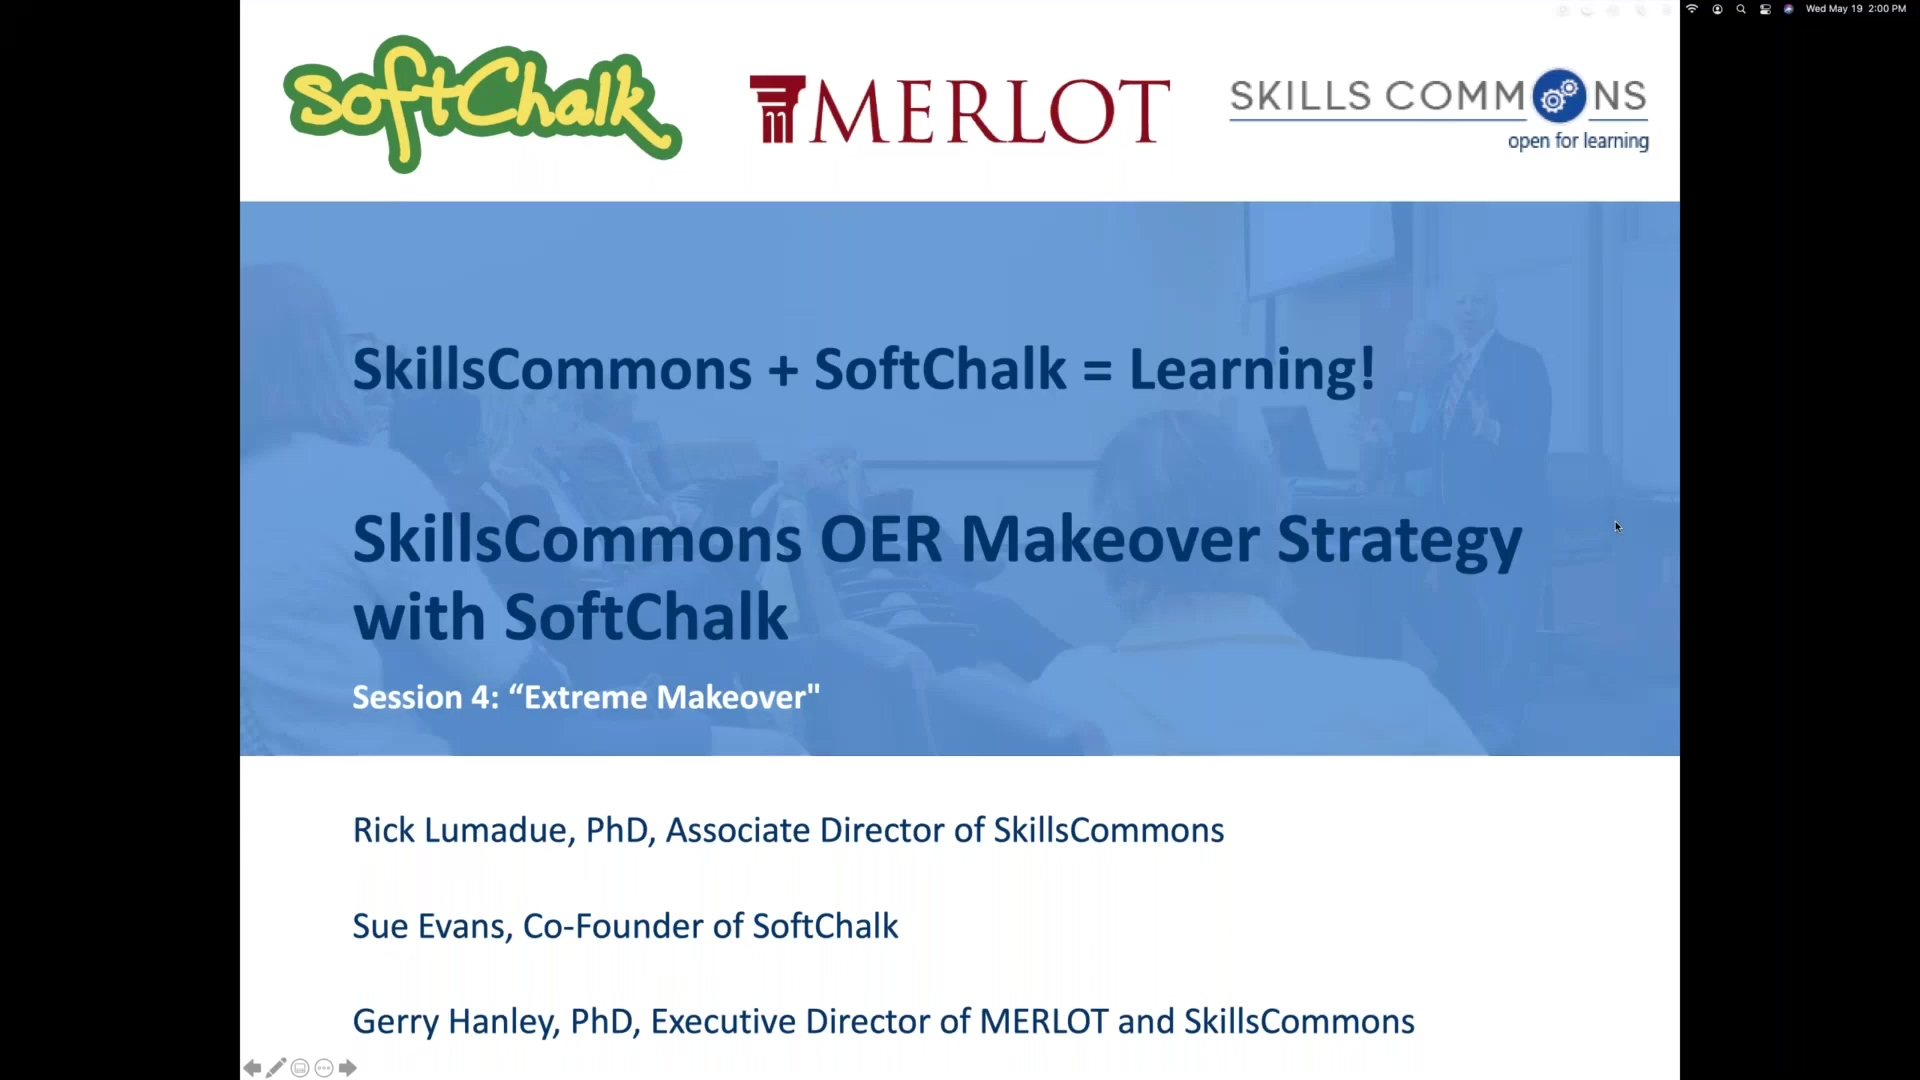 SkillsCommons OER Makeover Strategy with SoftChalk-5